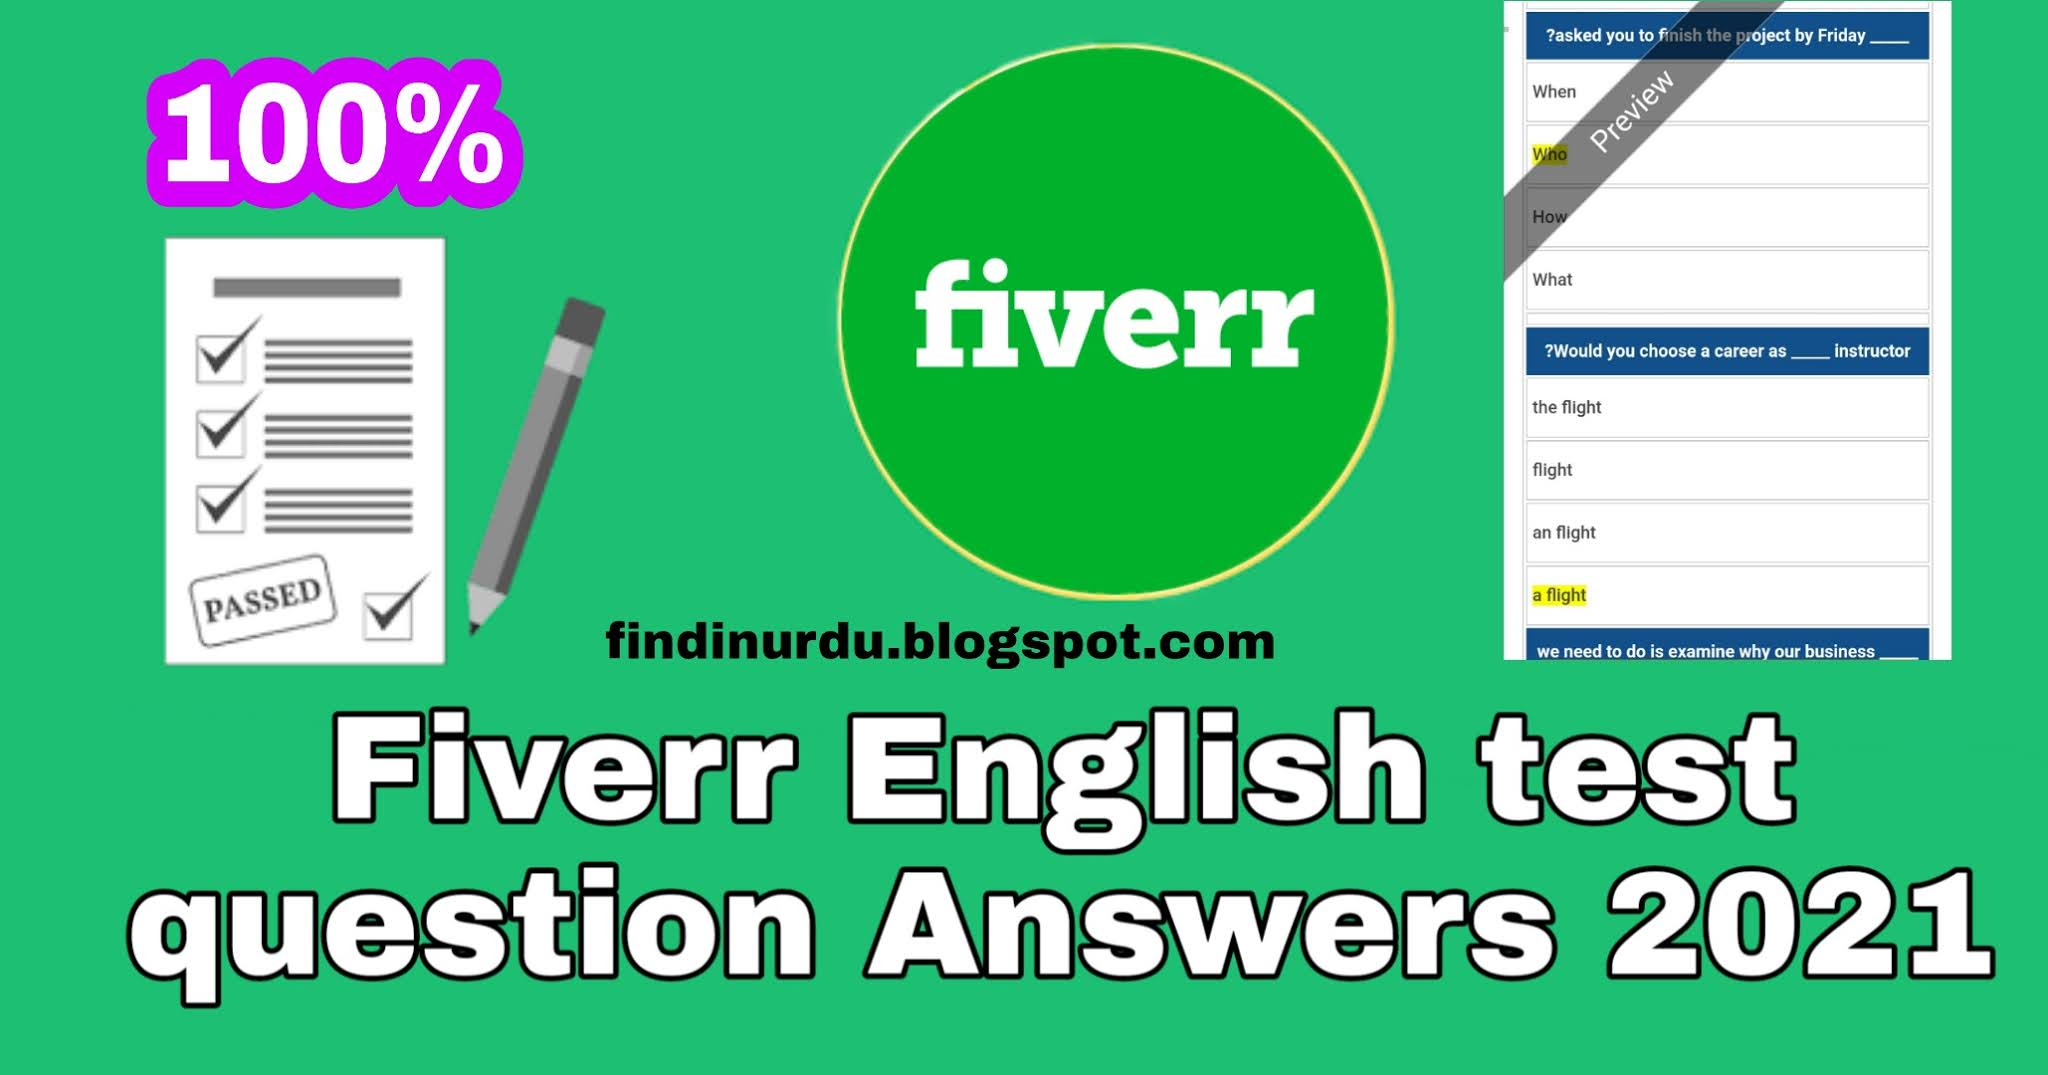 Fiverr English test question Answers 2021 | fiverr English Skill Test Answers 2021